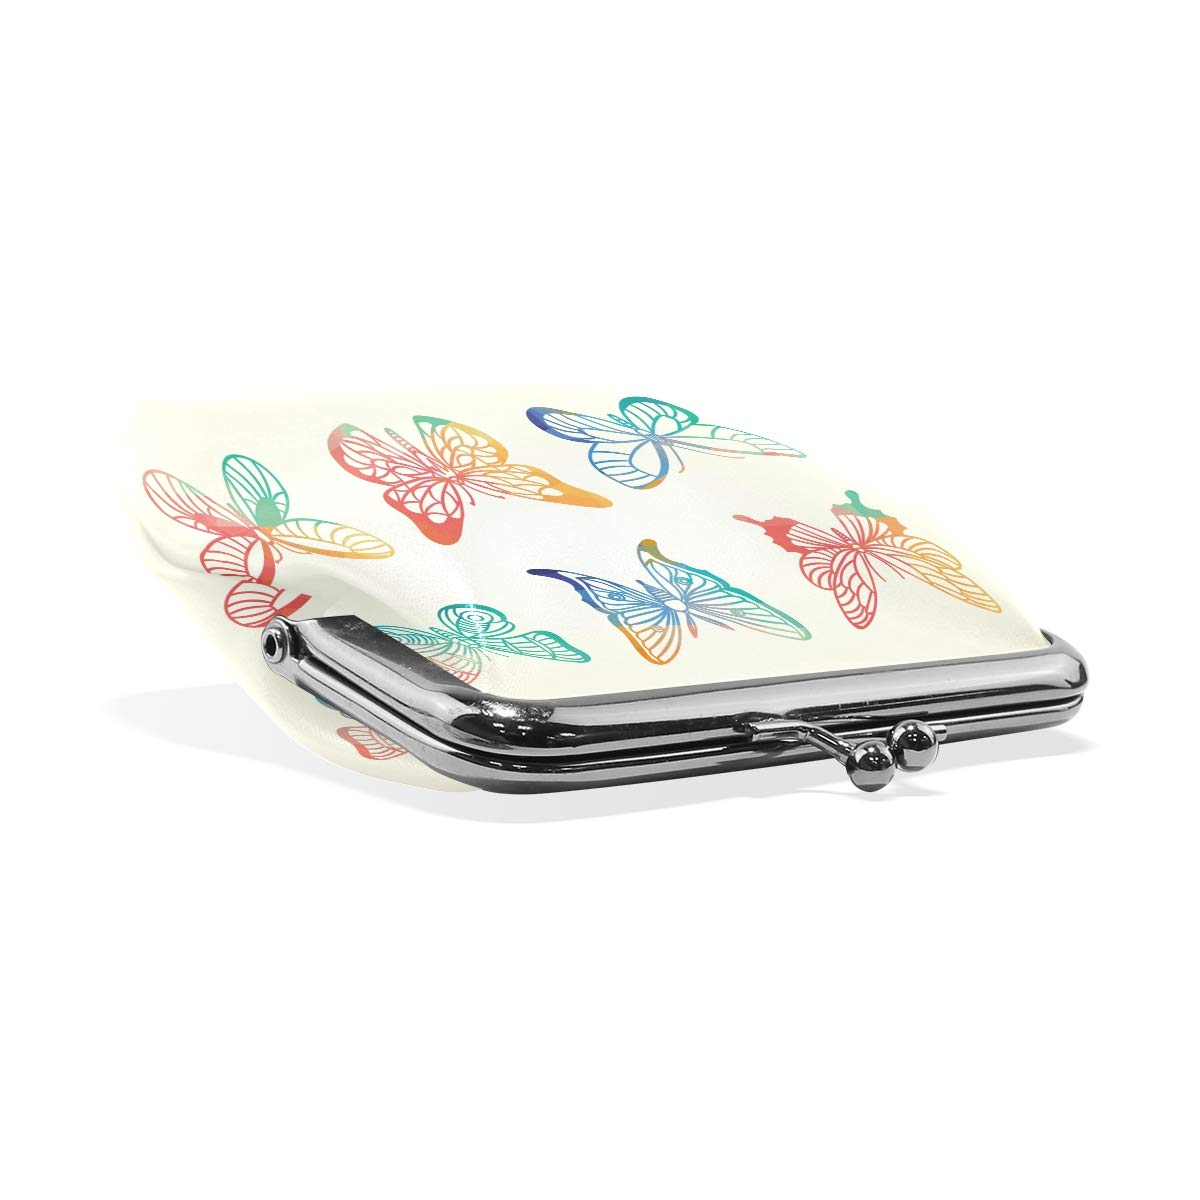 LALATOP Colorful Butterfly Womens Coin Pouch Purse wallet Card Holder Clutch Handbag